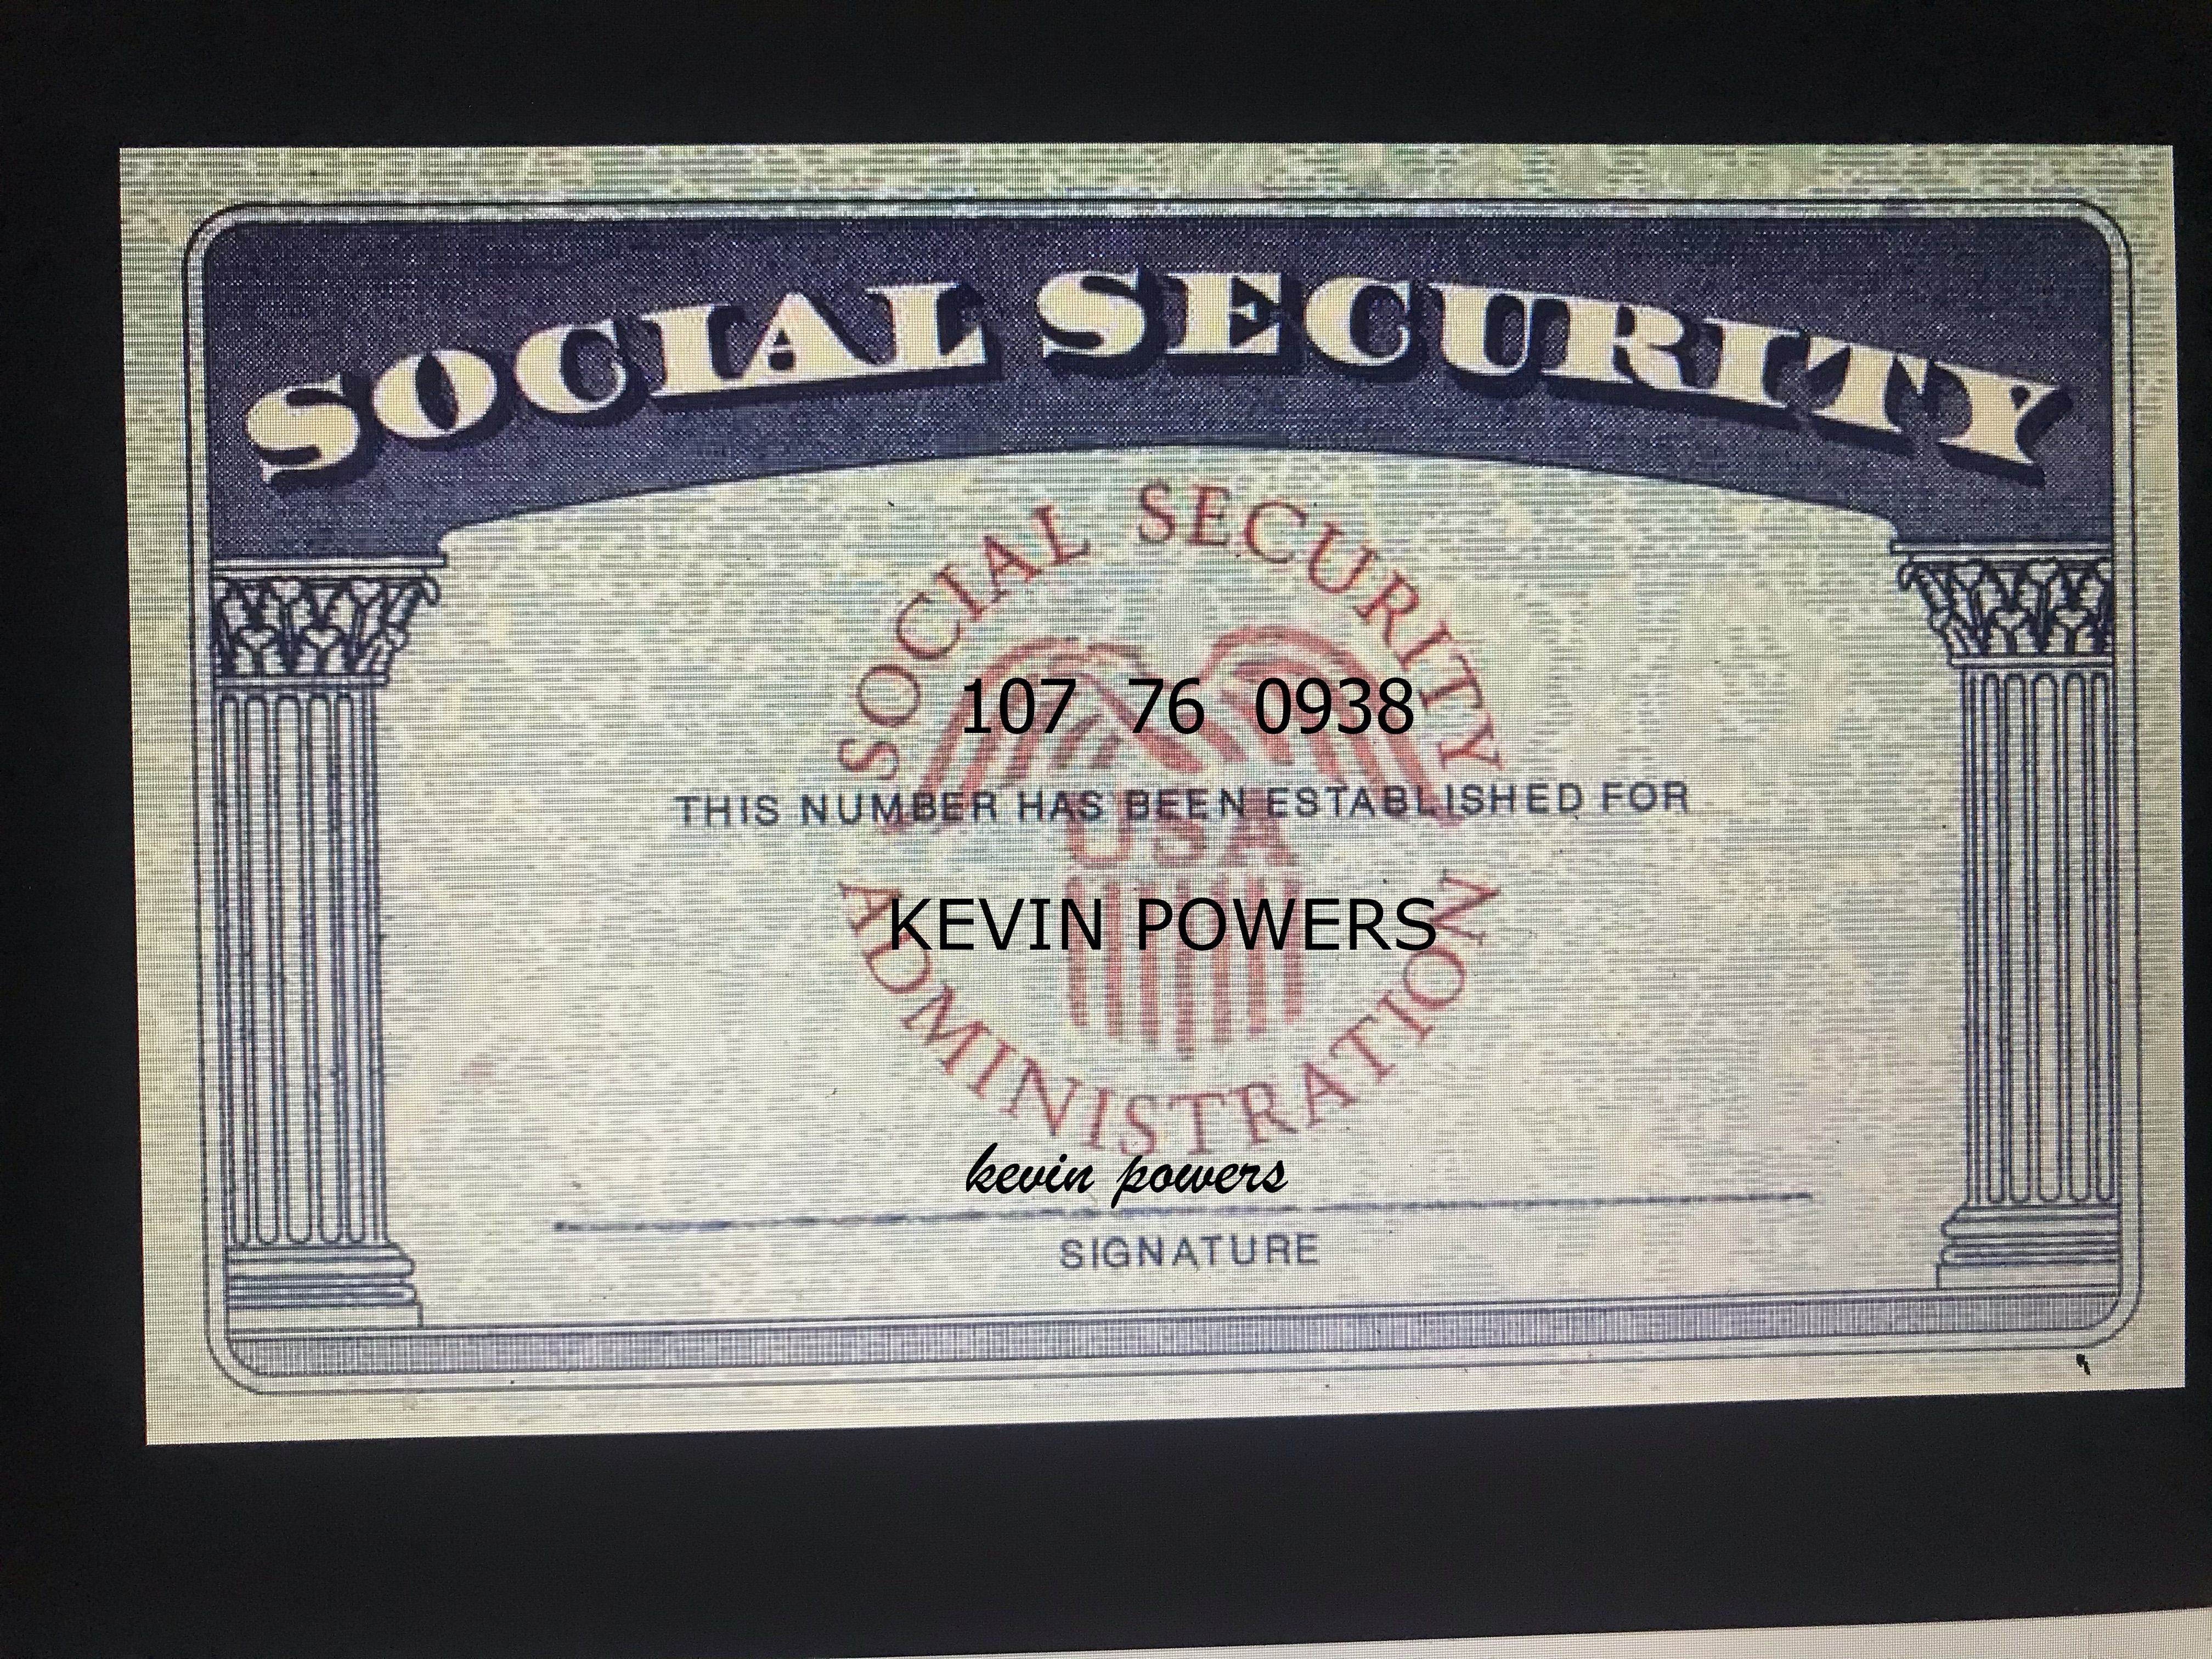 Social Security Card Social Security Card Passport Template Cards